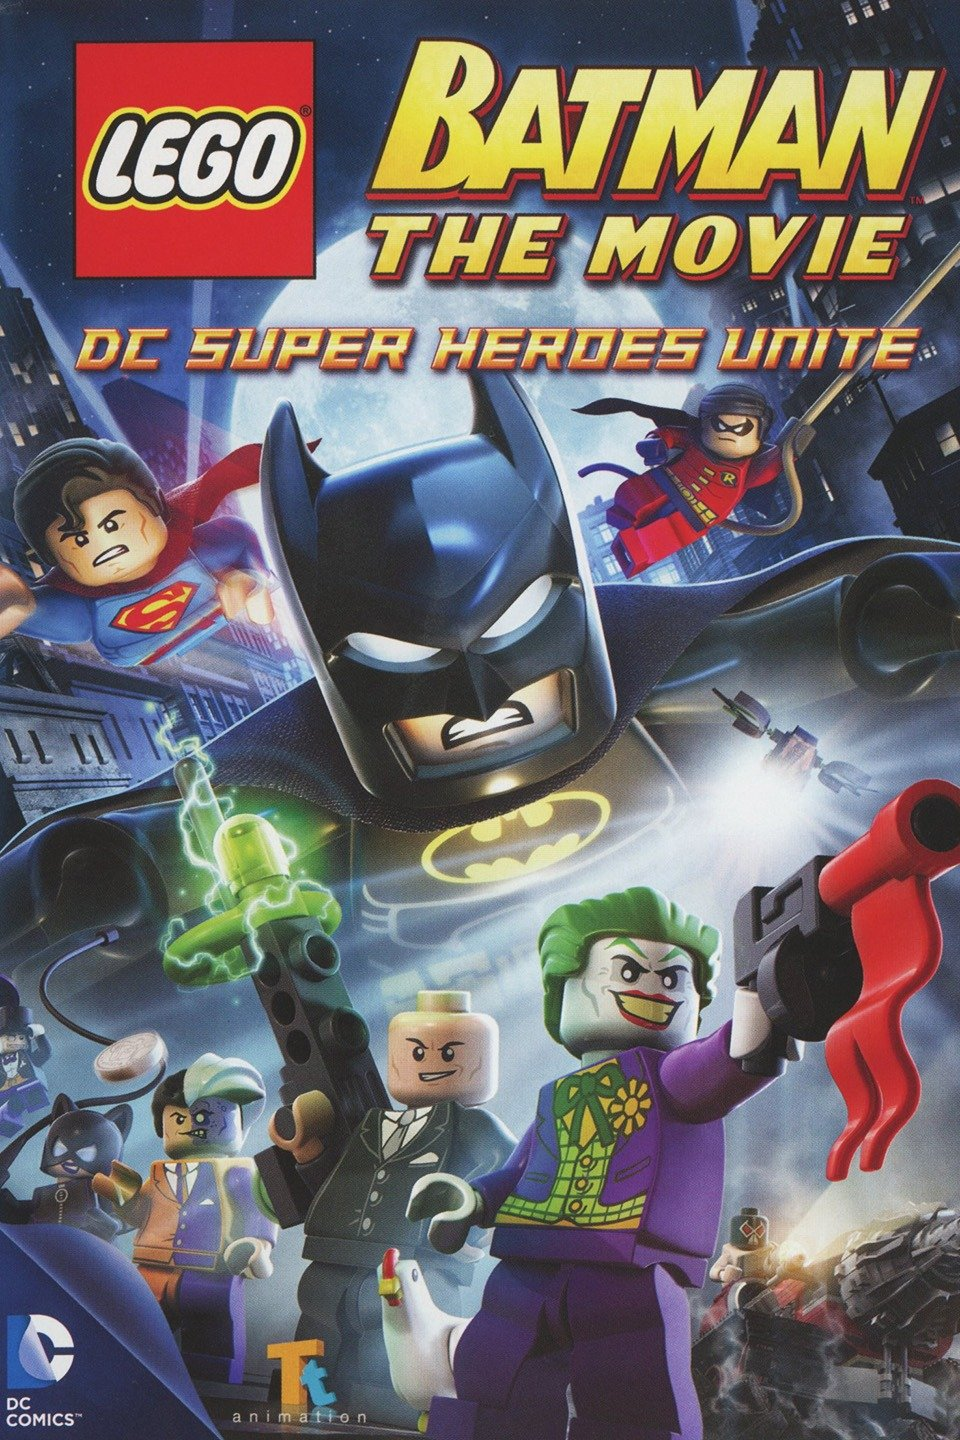 Lego Batman: The Movie - DC Super Heroes Unite-Lego Batman: The Movie - DC Super Heroes Unite